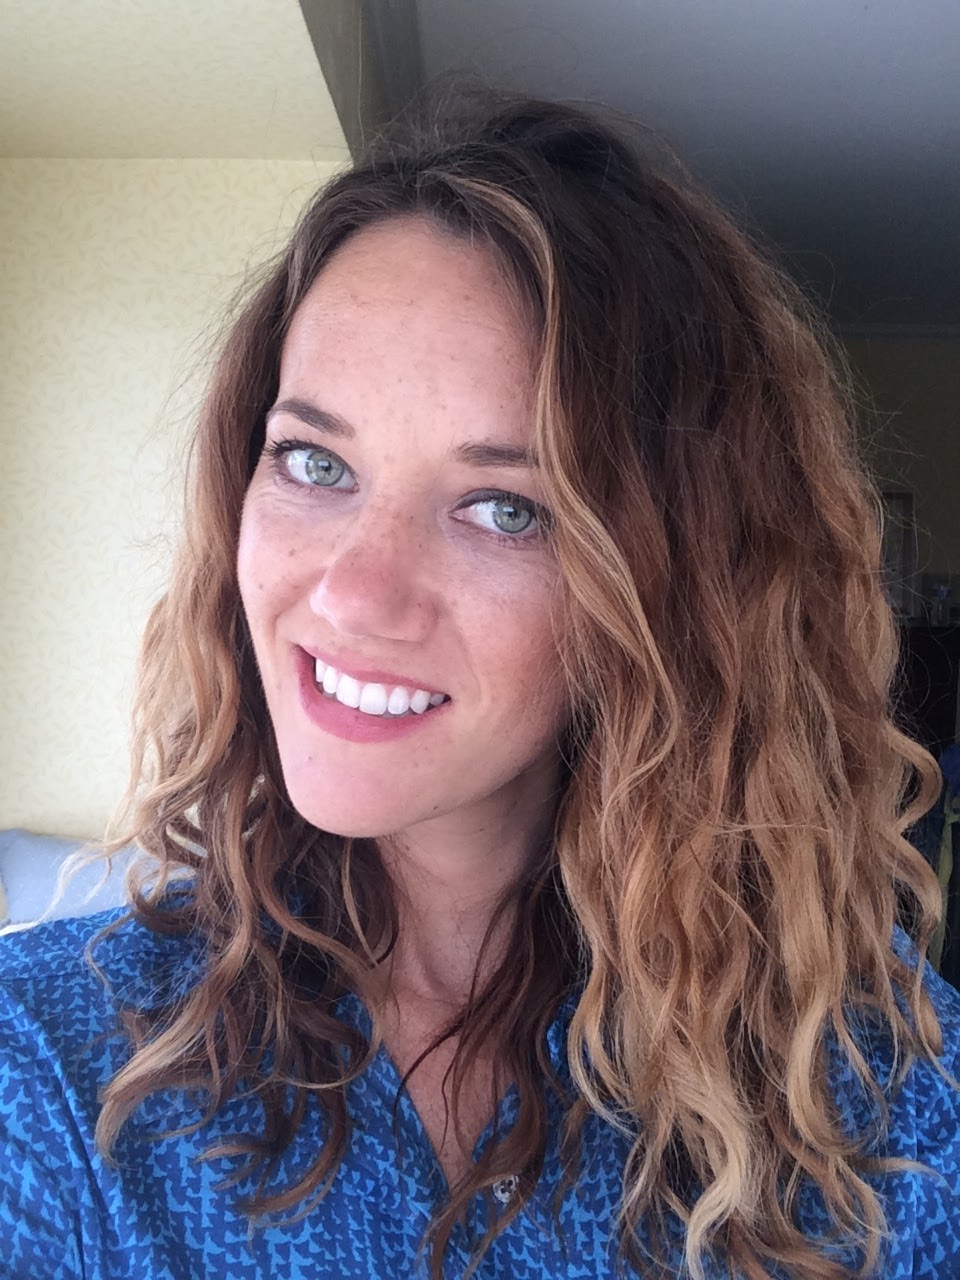 rob mclennan s blog 12 or 20 second series questions with kristin